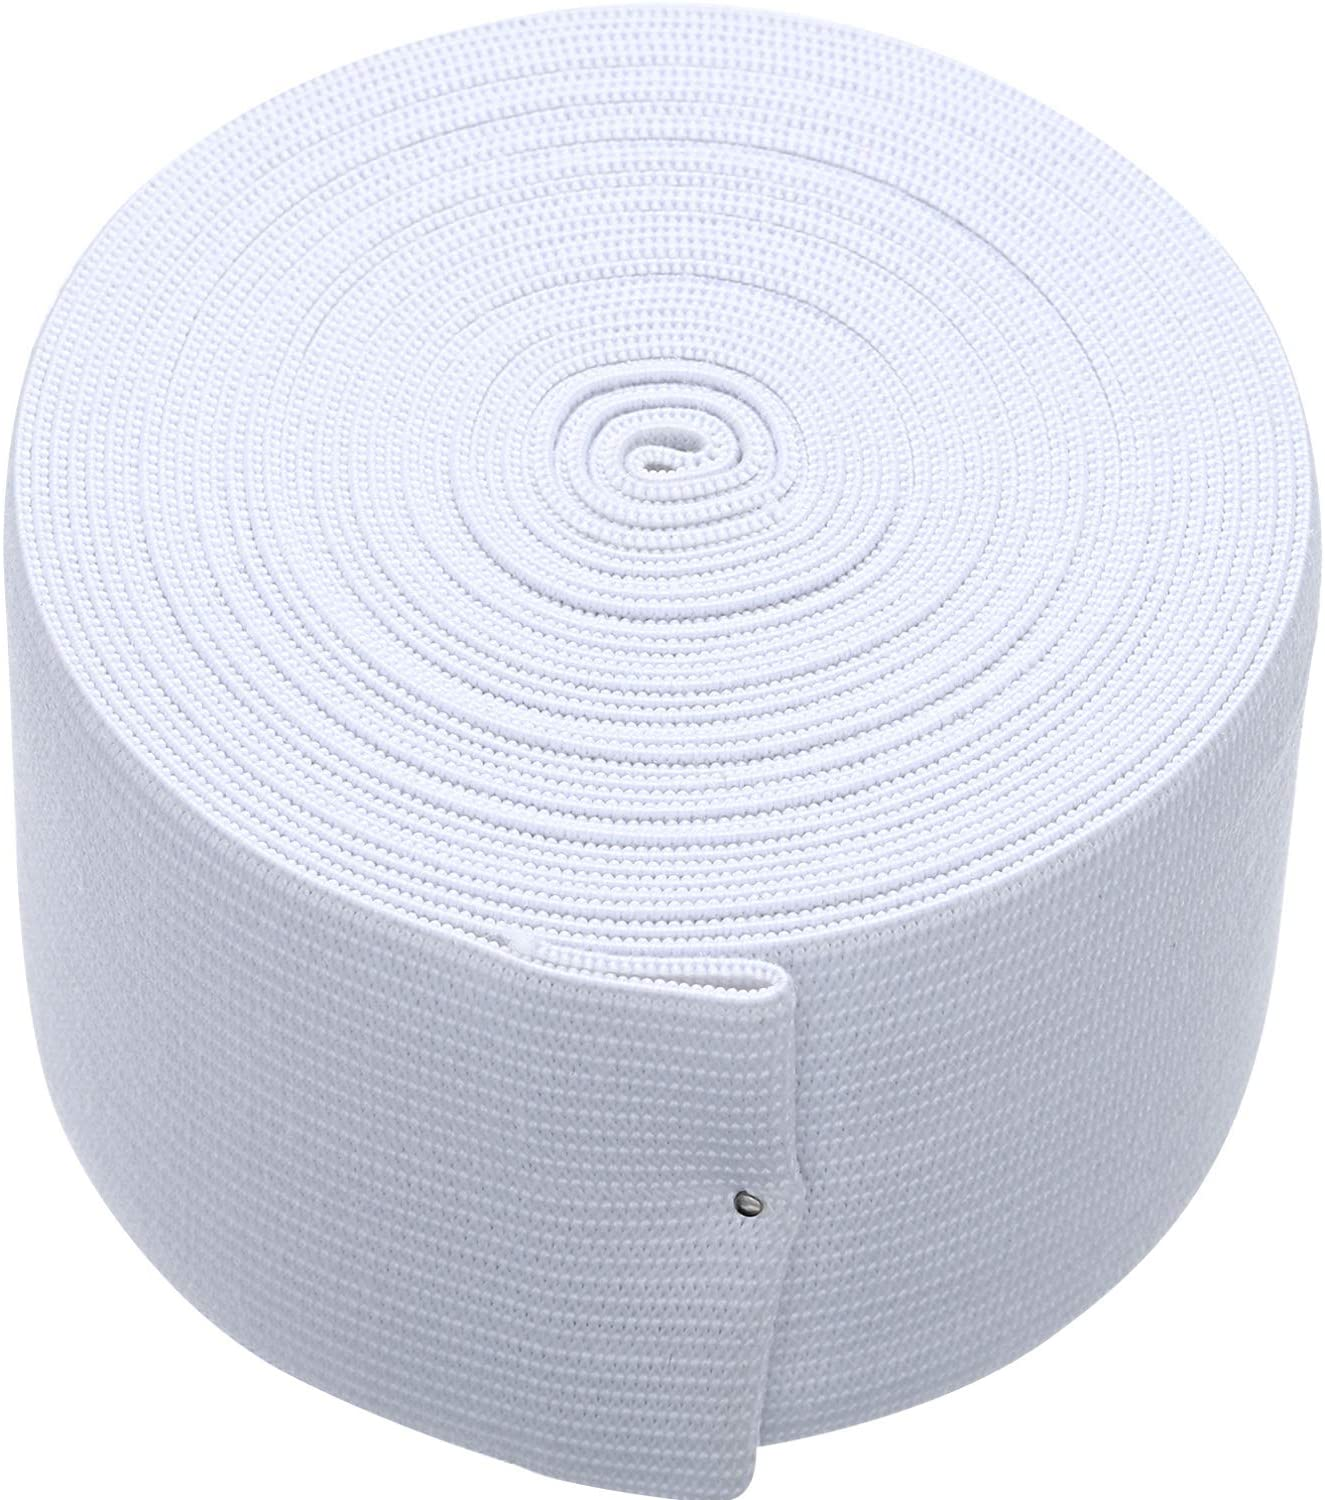 White Knit Elastic Spool (2 Inch x 5 Yard)